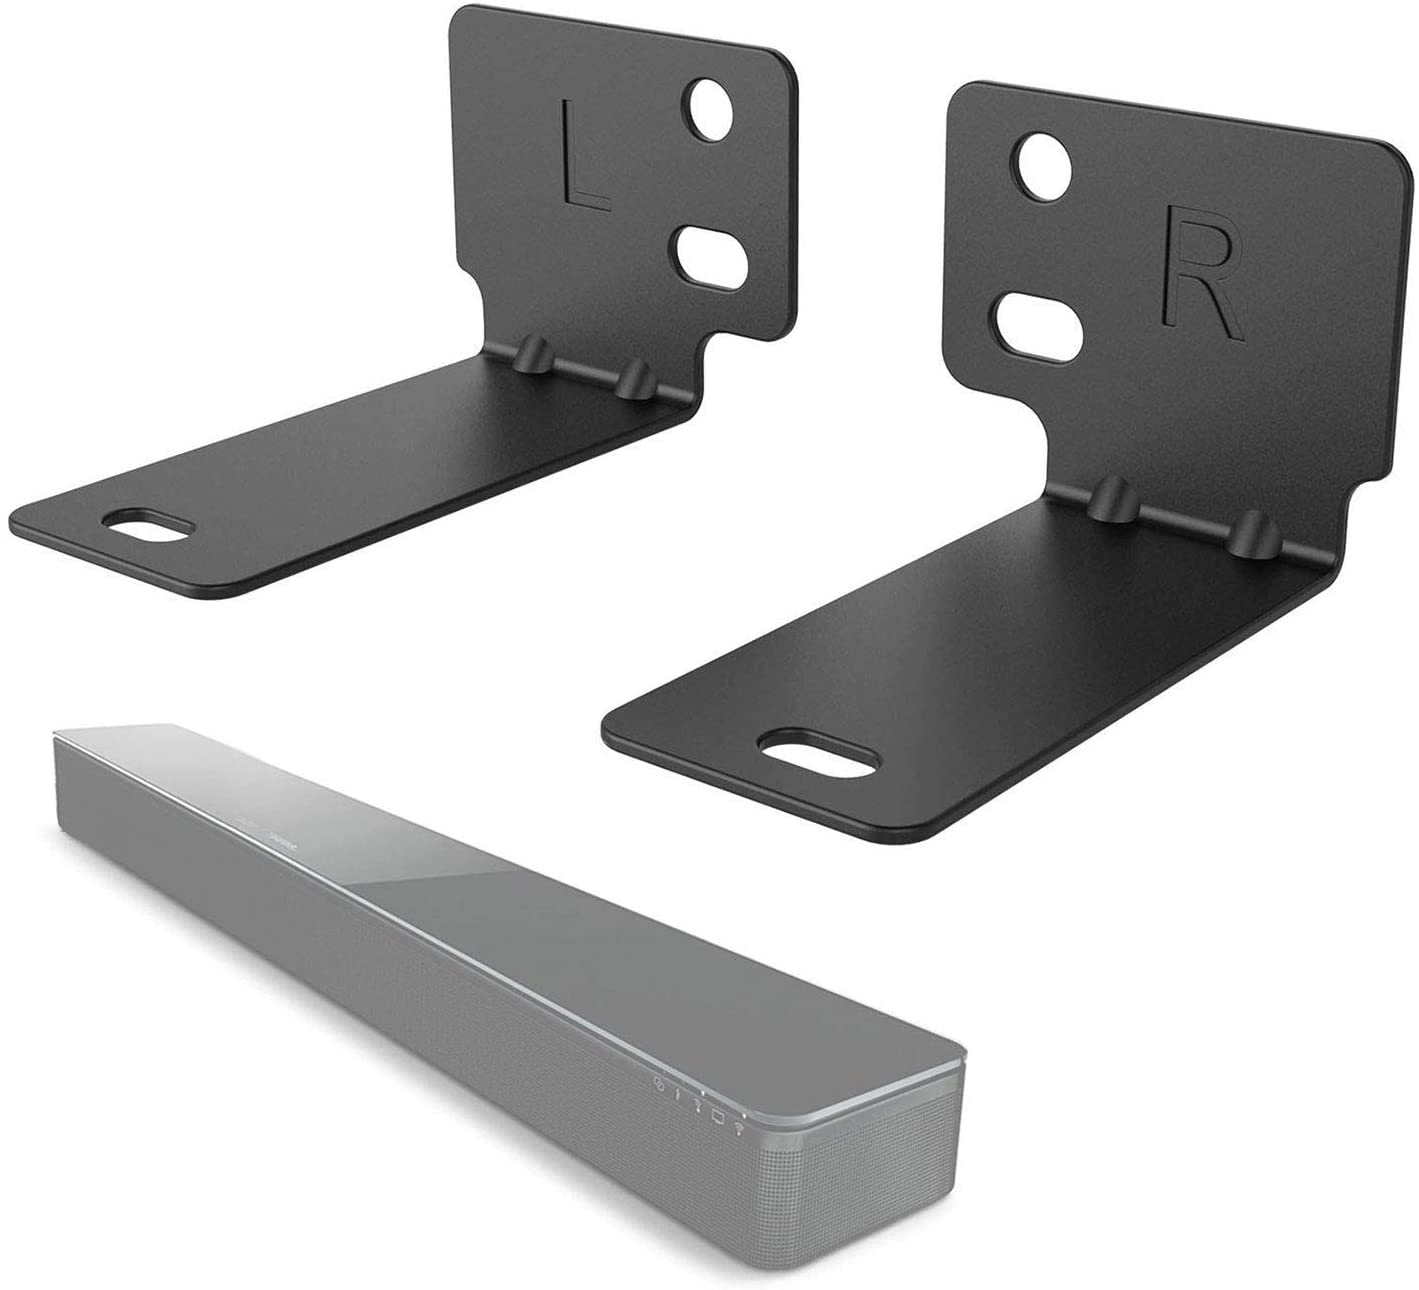 WALI Bose Sound Touch 300, Soundbar 500 and Soundbar 700 Sound Bar Speaker Wall Mount Bracket Holder Stands (BSM002), Black